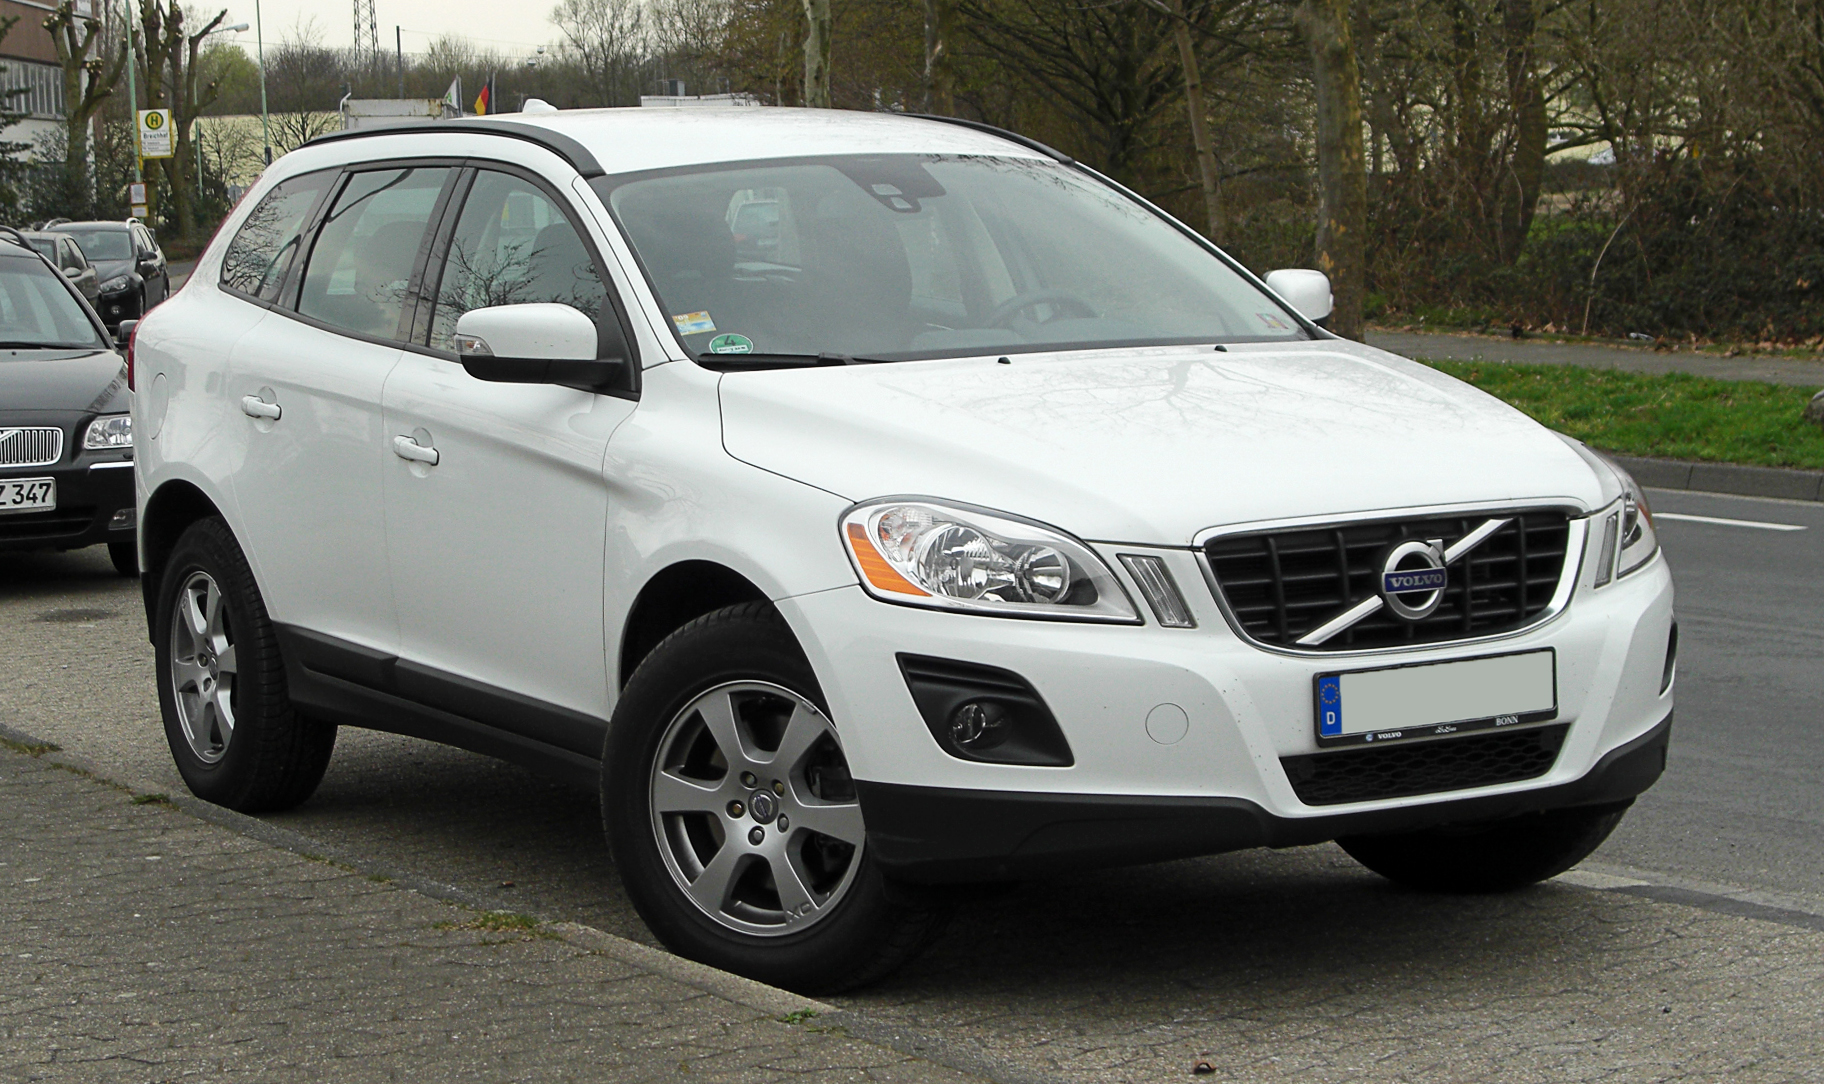 XC60 car - Color: White  // Description: delicate